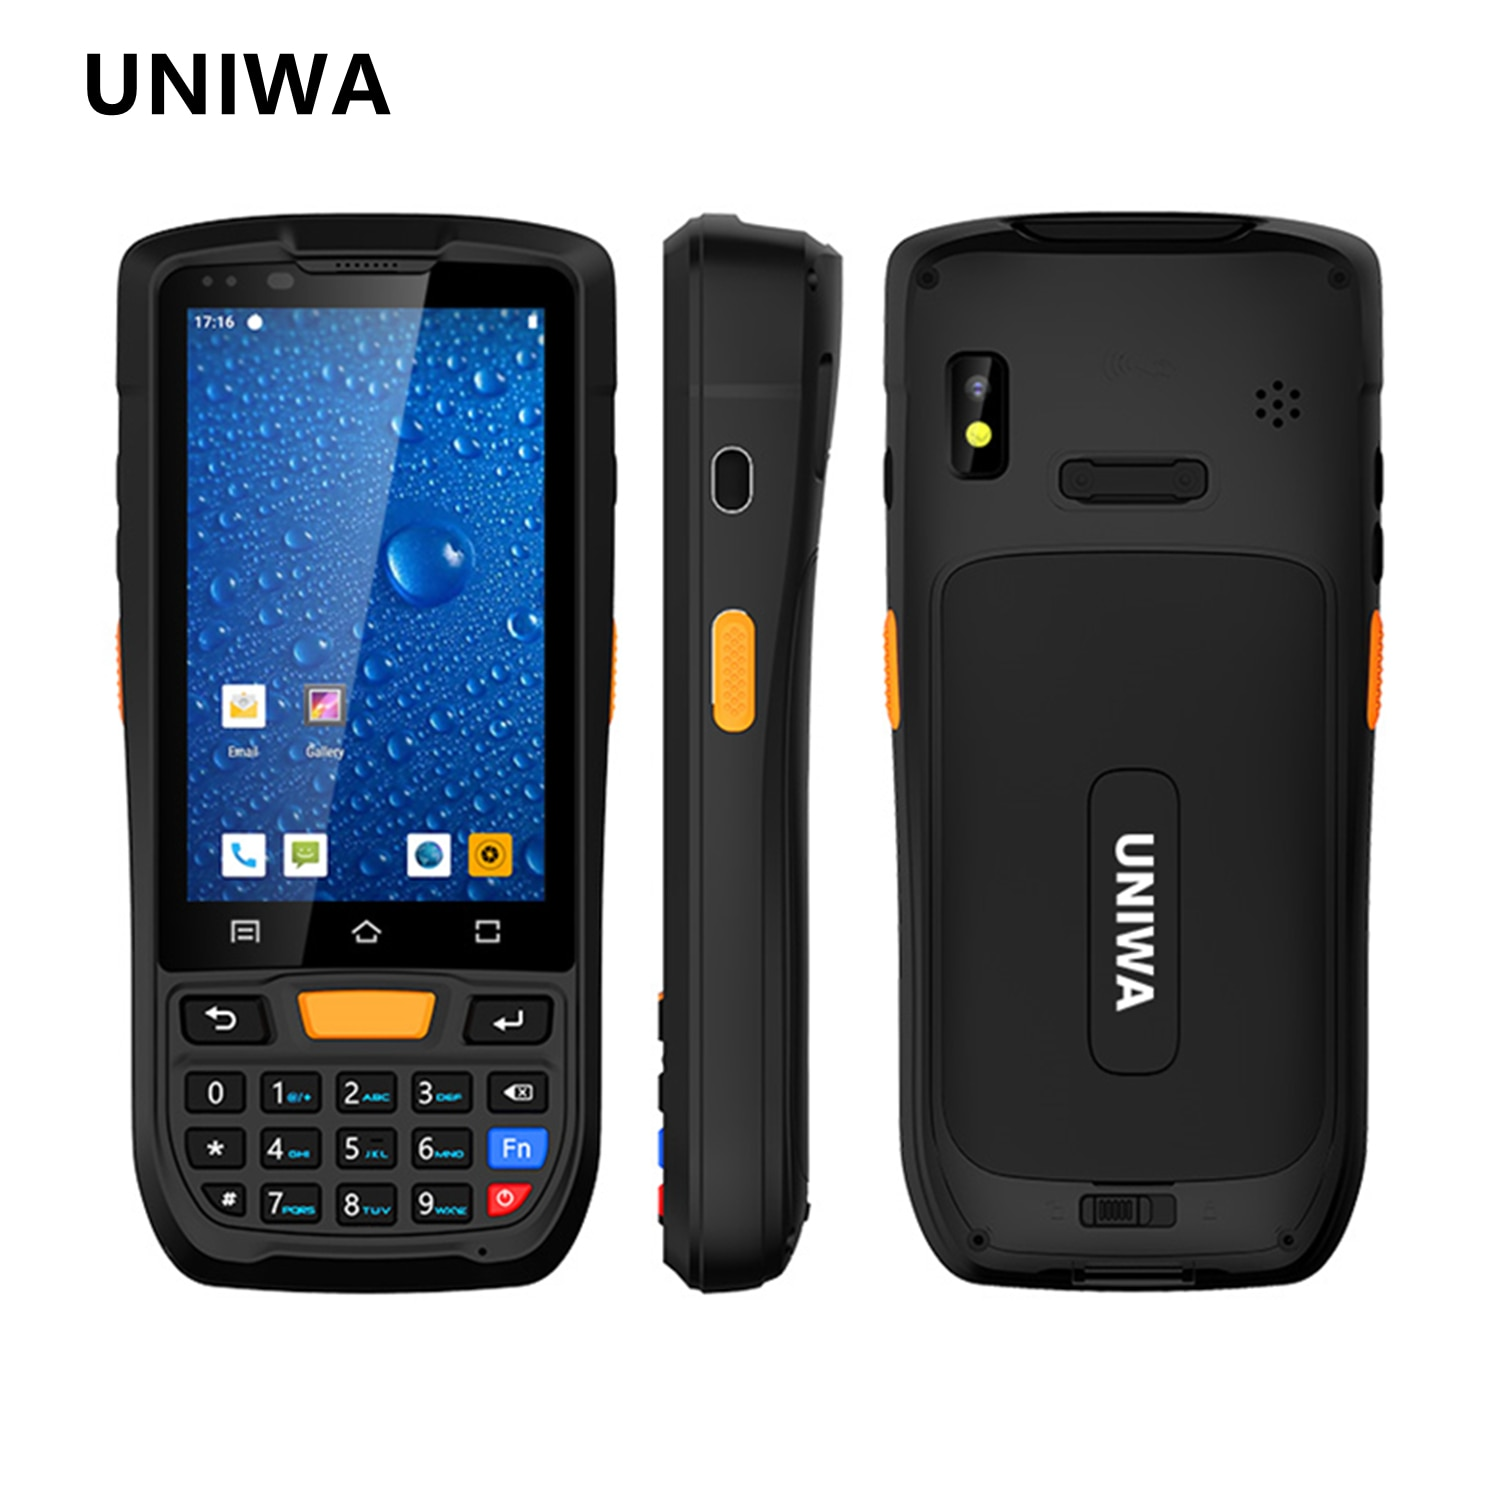 UNIWA HS001 IP67 Waterproof Smartphone 2GB RAM 16GB ROM 8MP Android 9.0 Mobile Phone 4300mAh NFC Cellphone Support  UHF PSAM